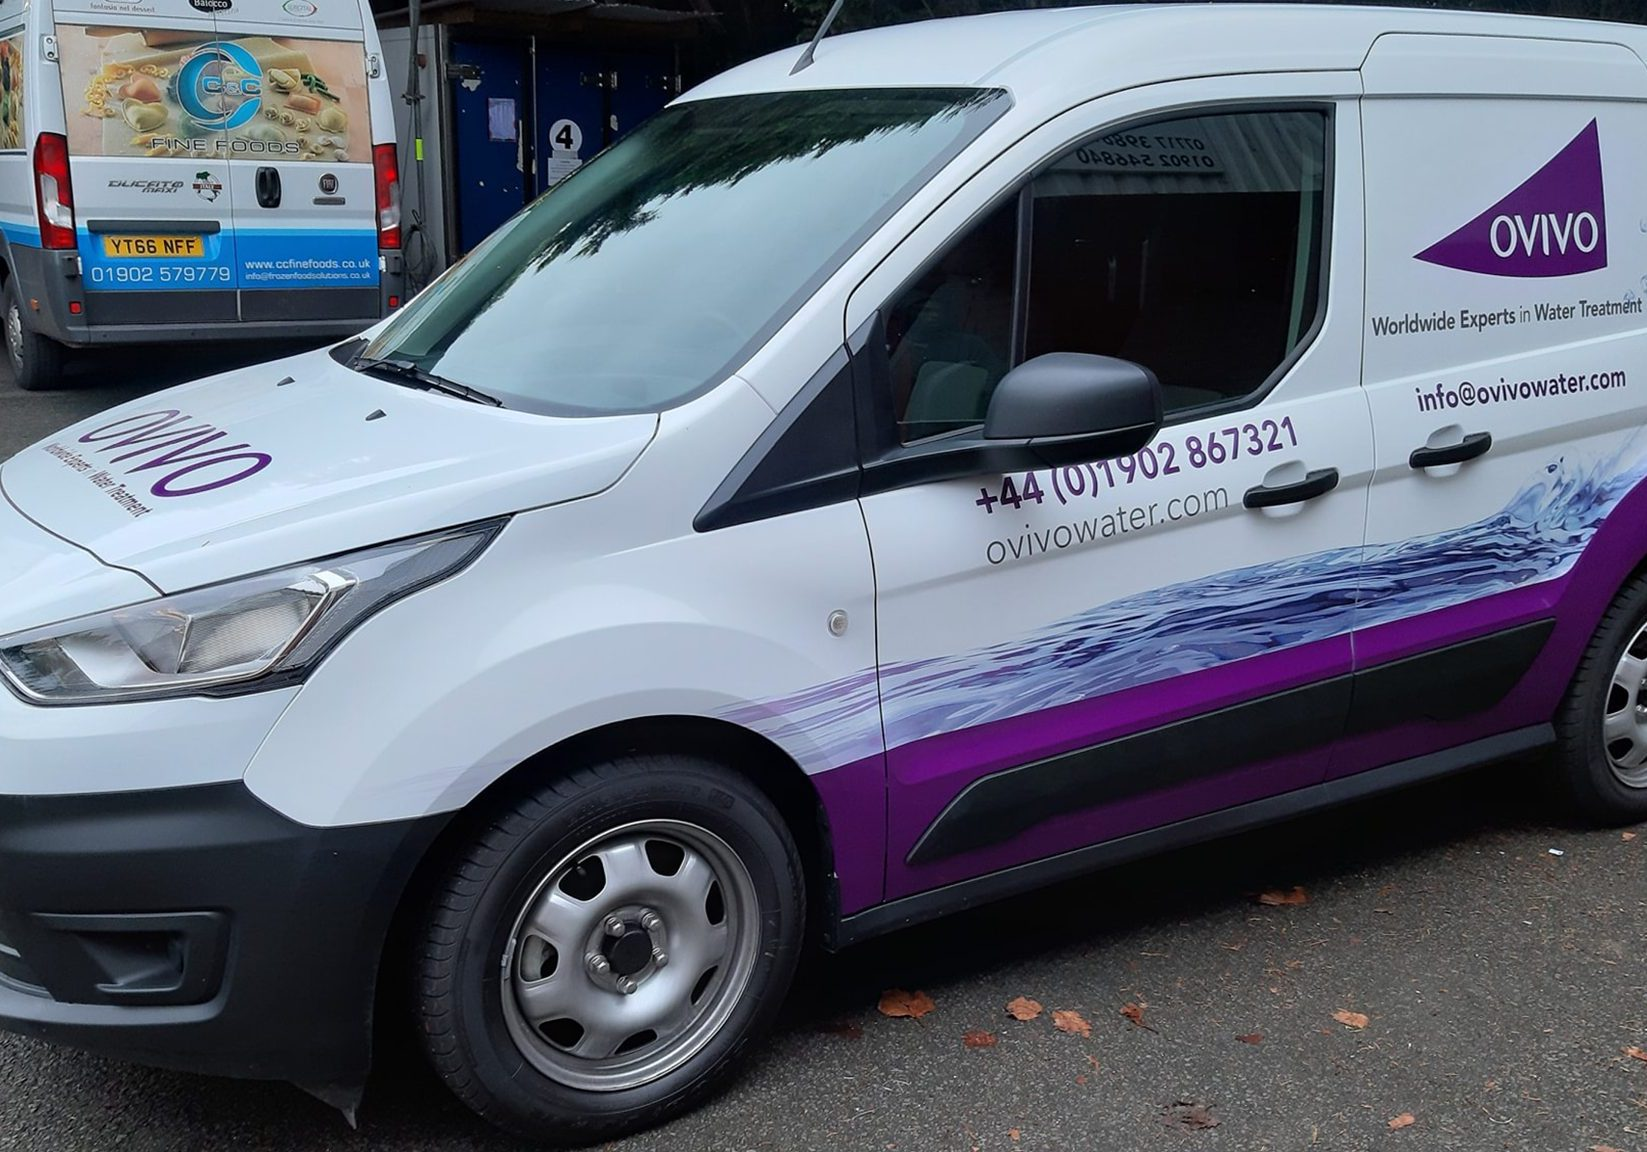 Vehicle livery & window graphics